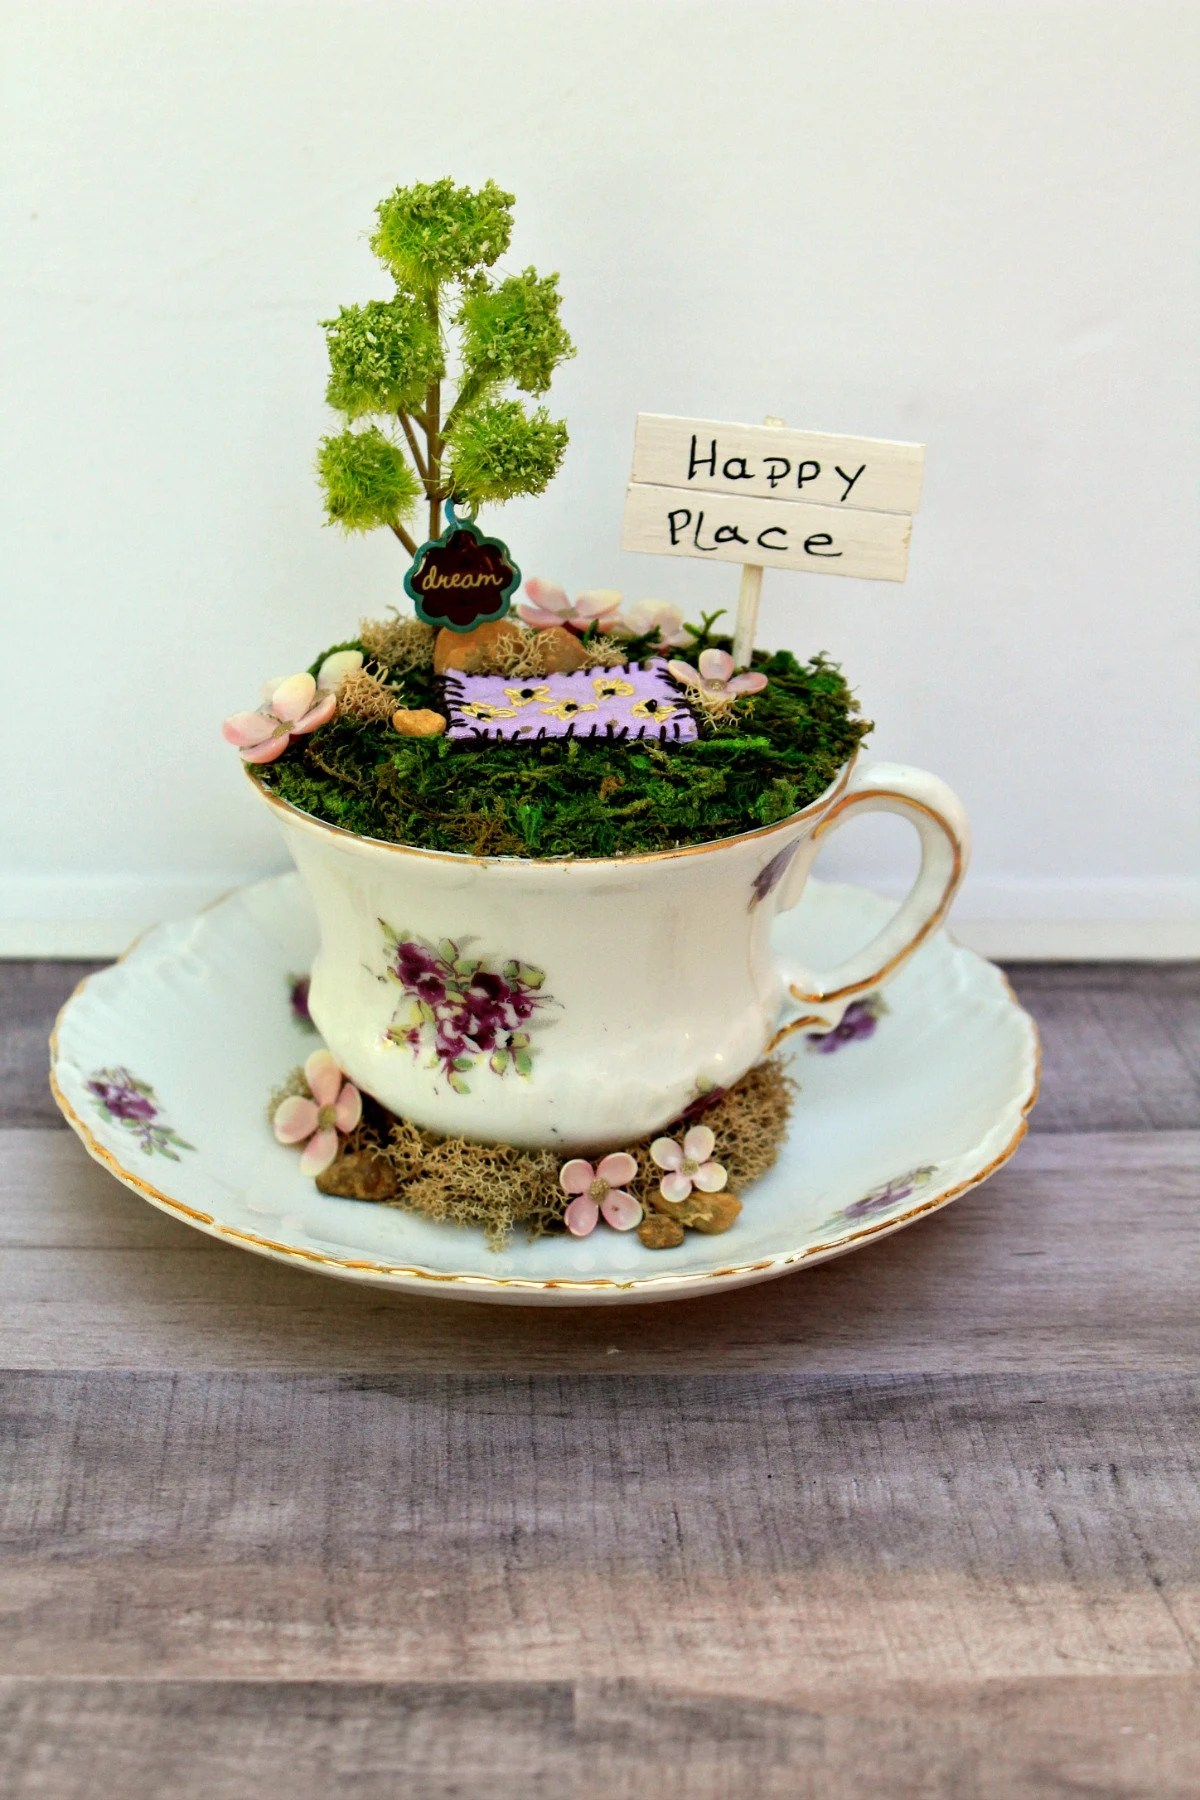 Picnic Decor Happy Place Picnic Scene Tea Cup Garden Teacup Decor Desktop Garden Summer Decor Miniature Moss Garden Dream Garden